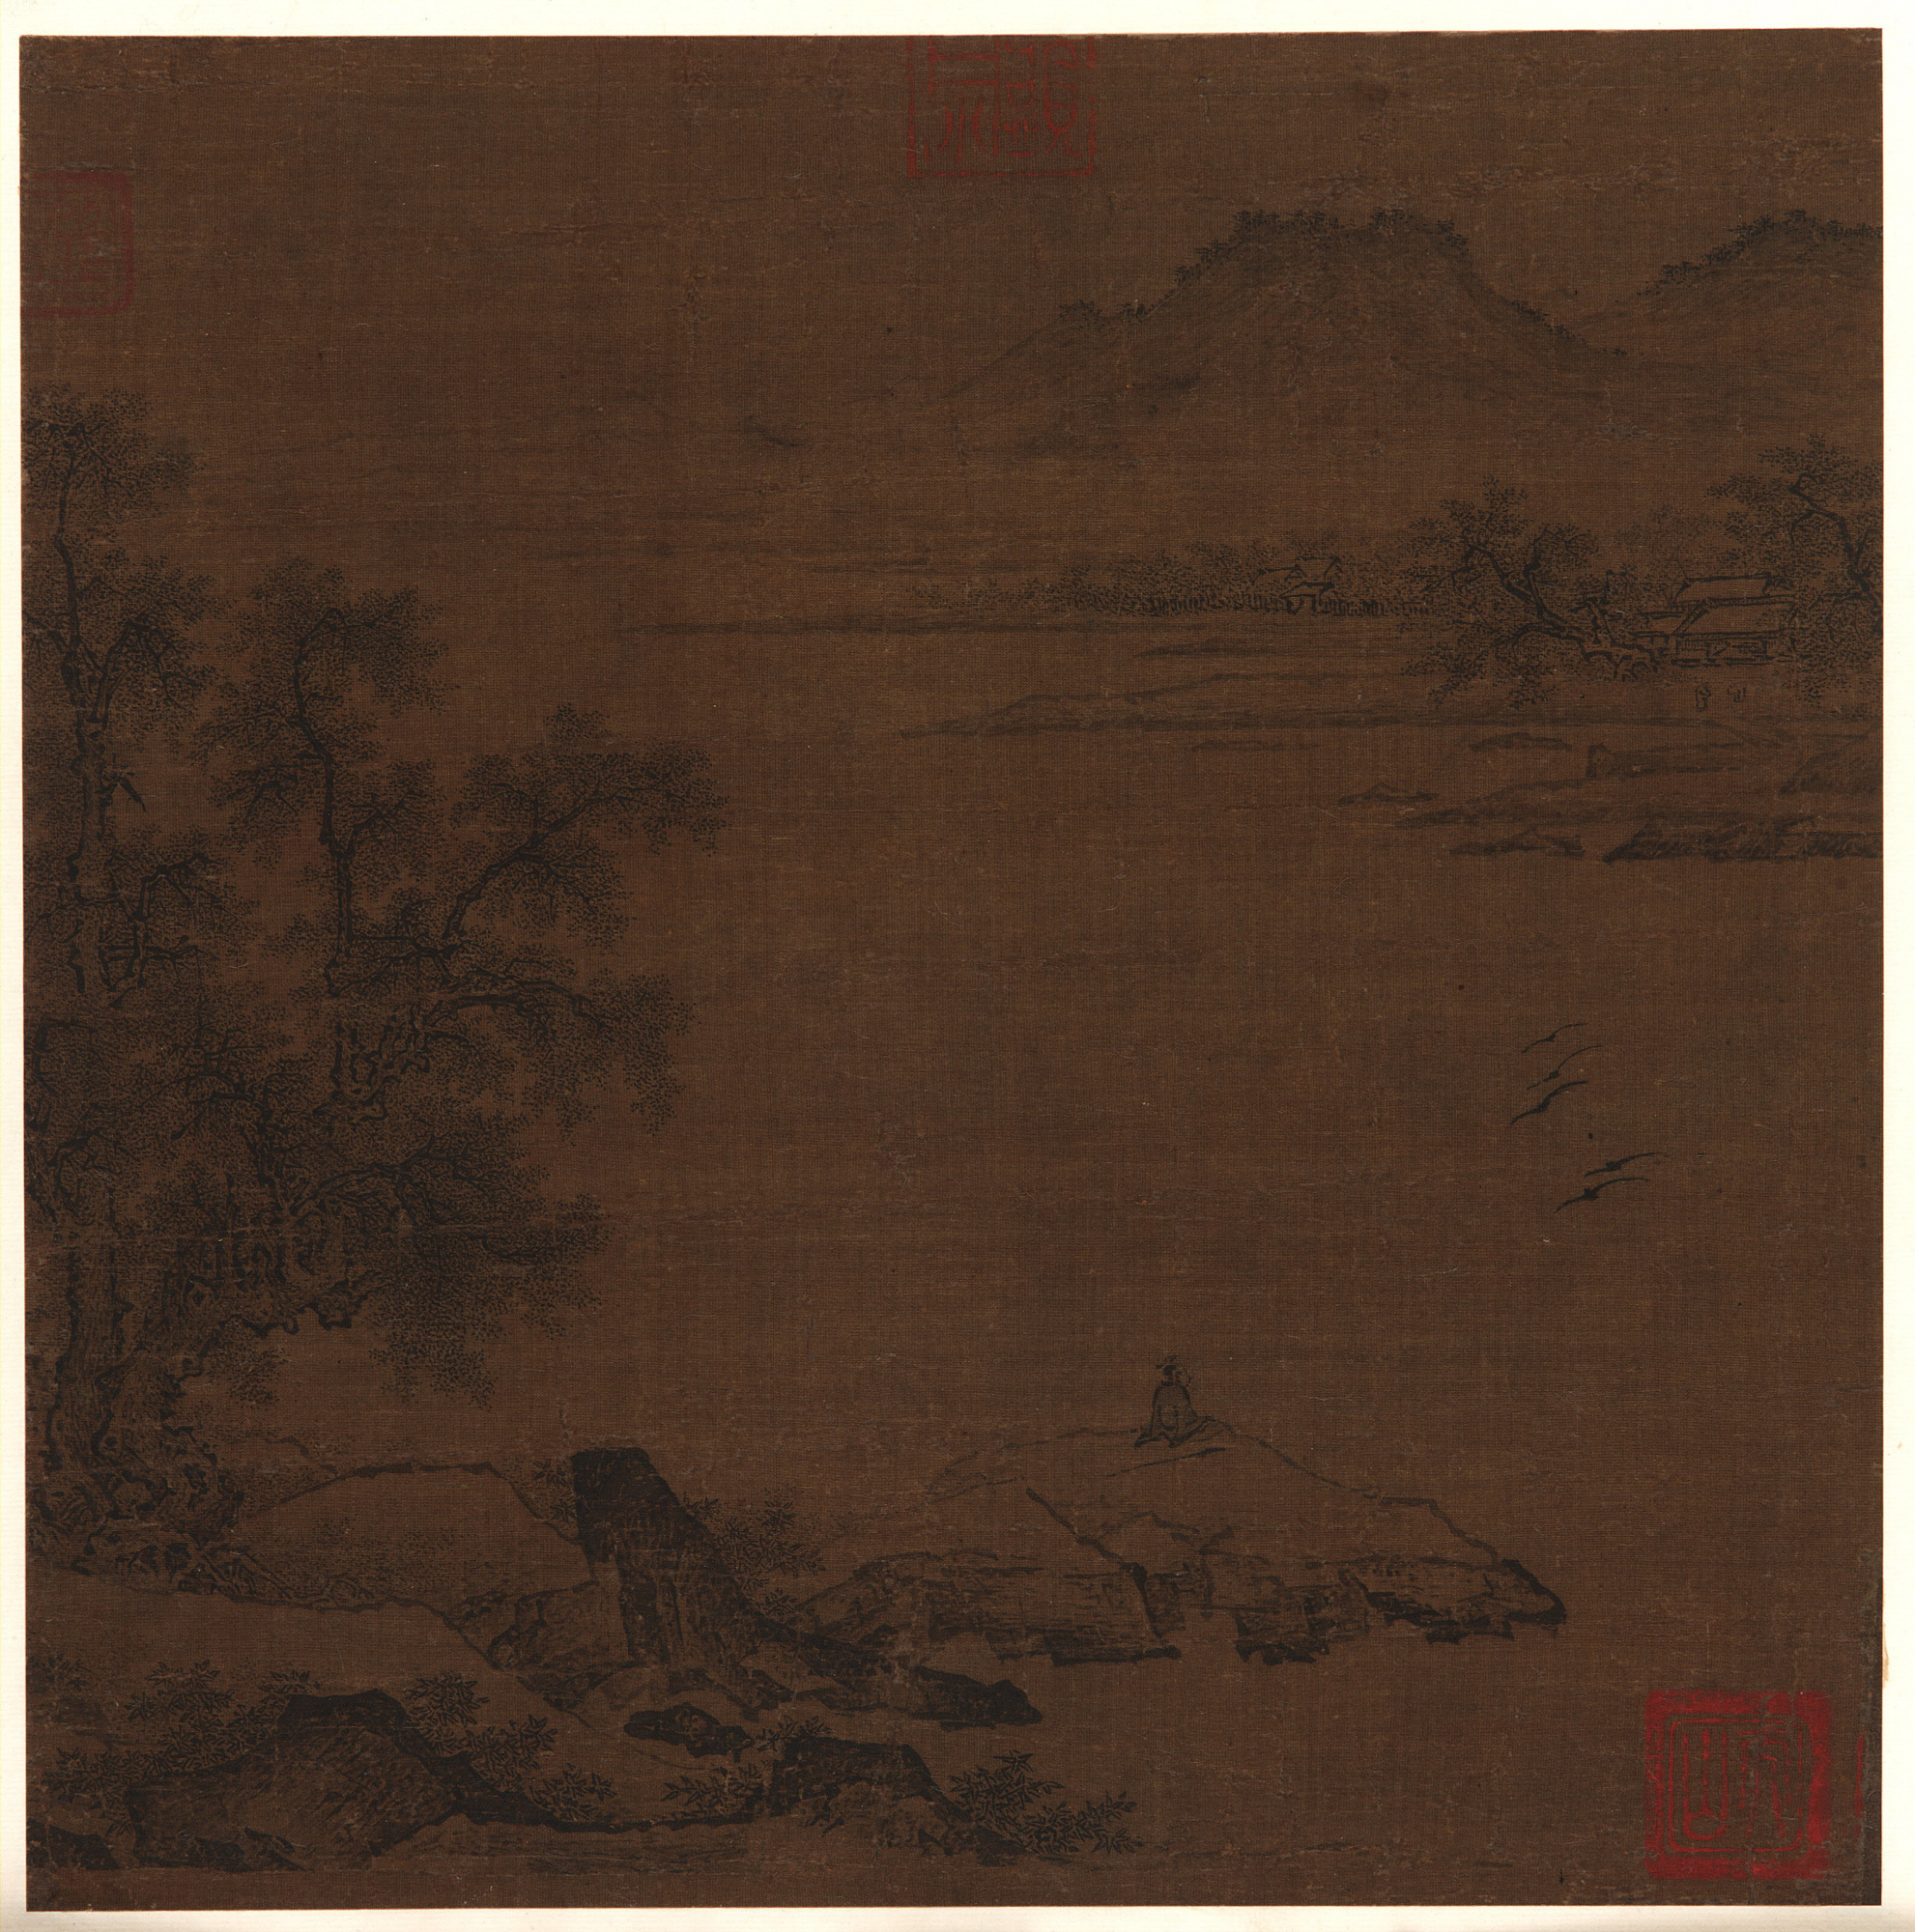 : River Landscape with a Seated Figure in Foreground